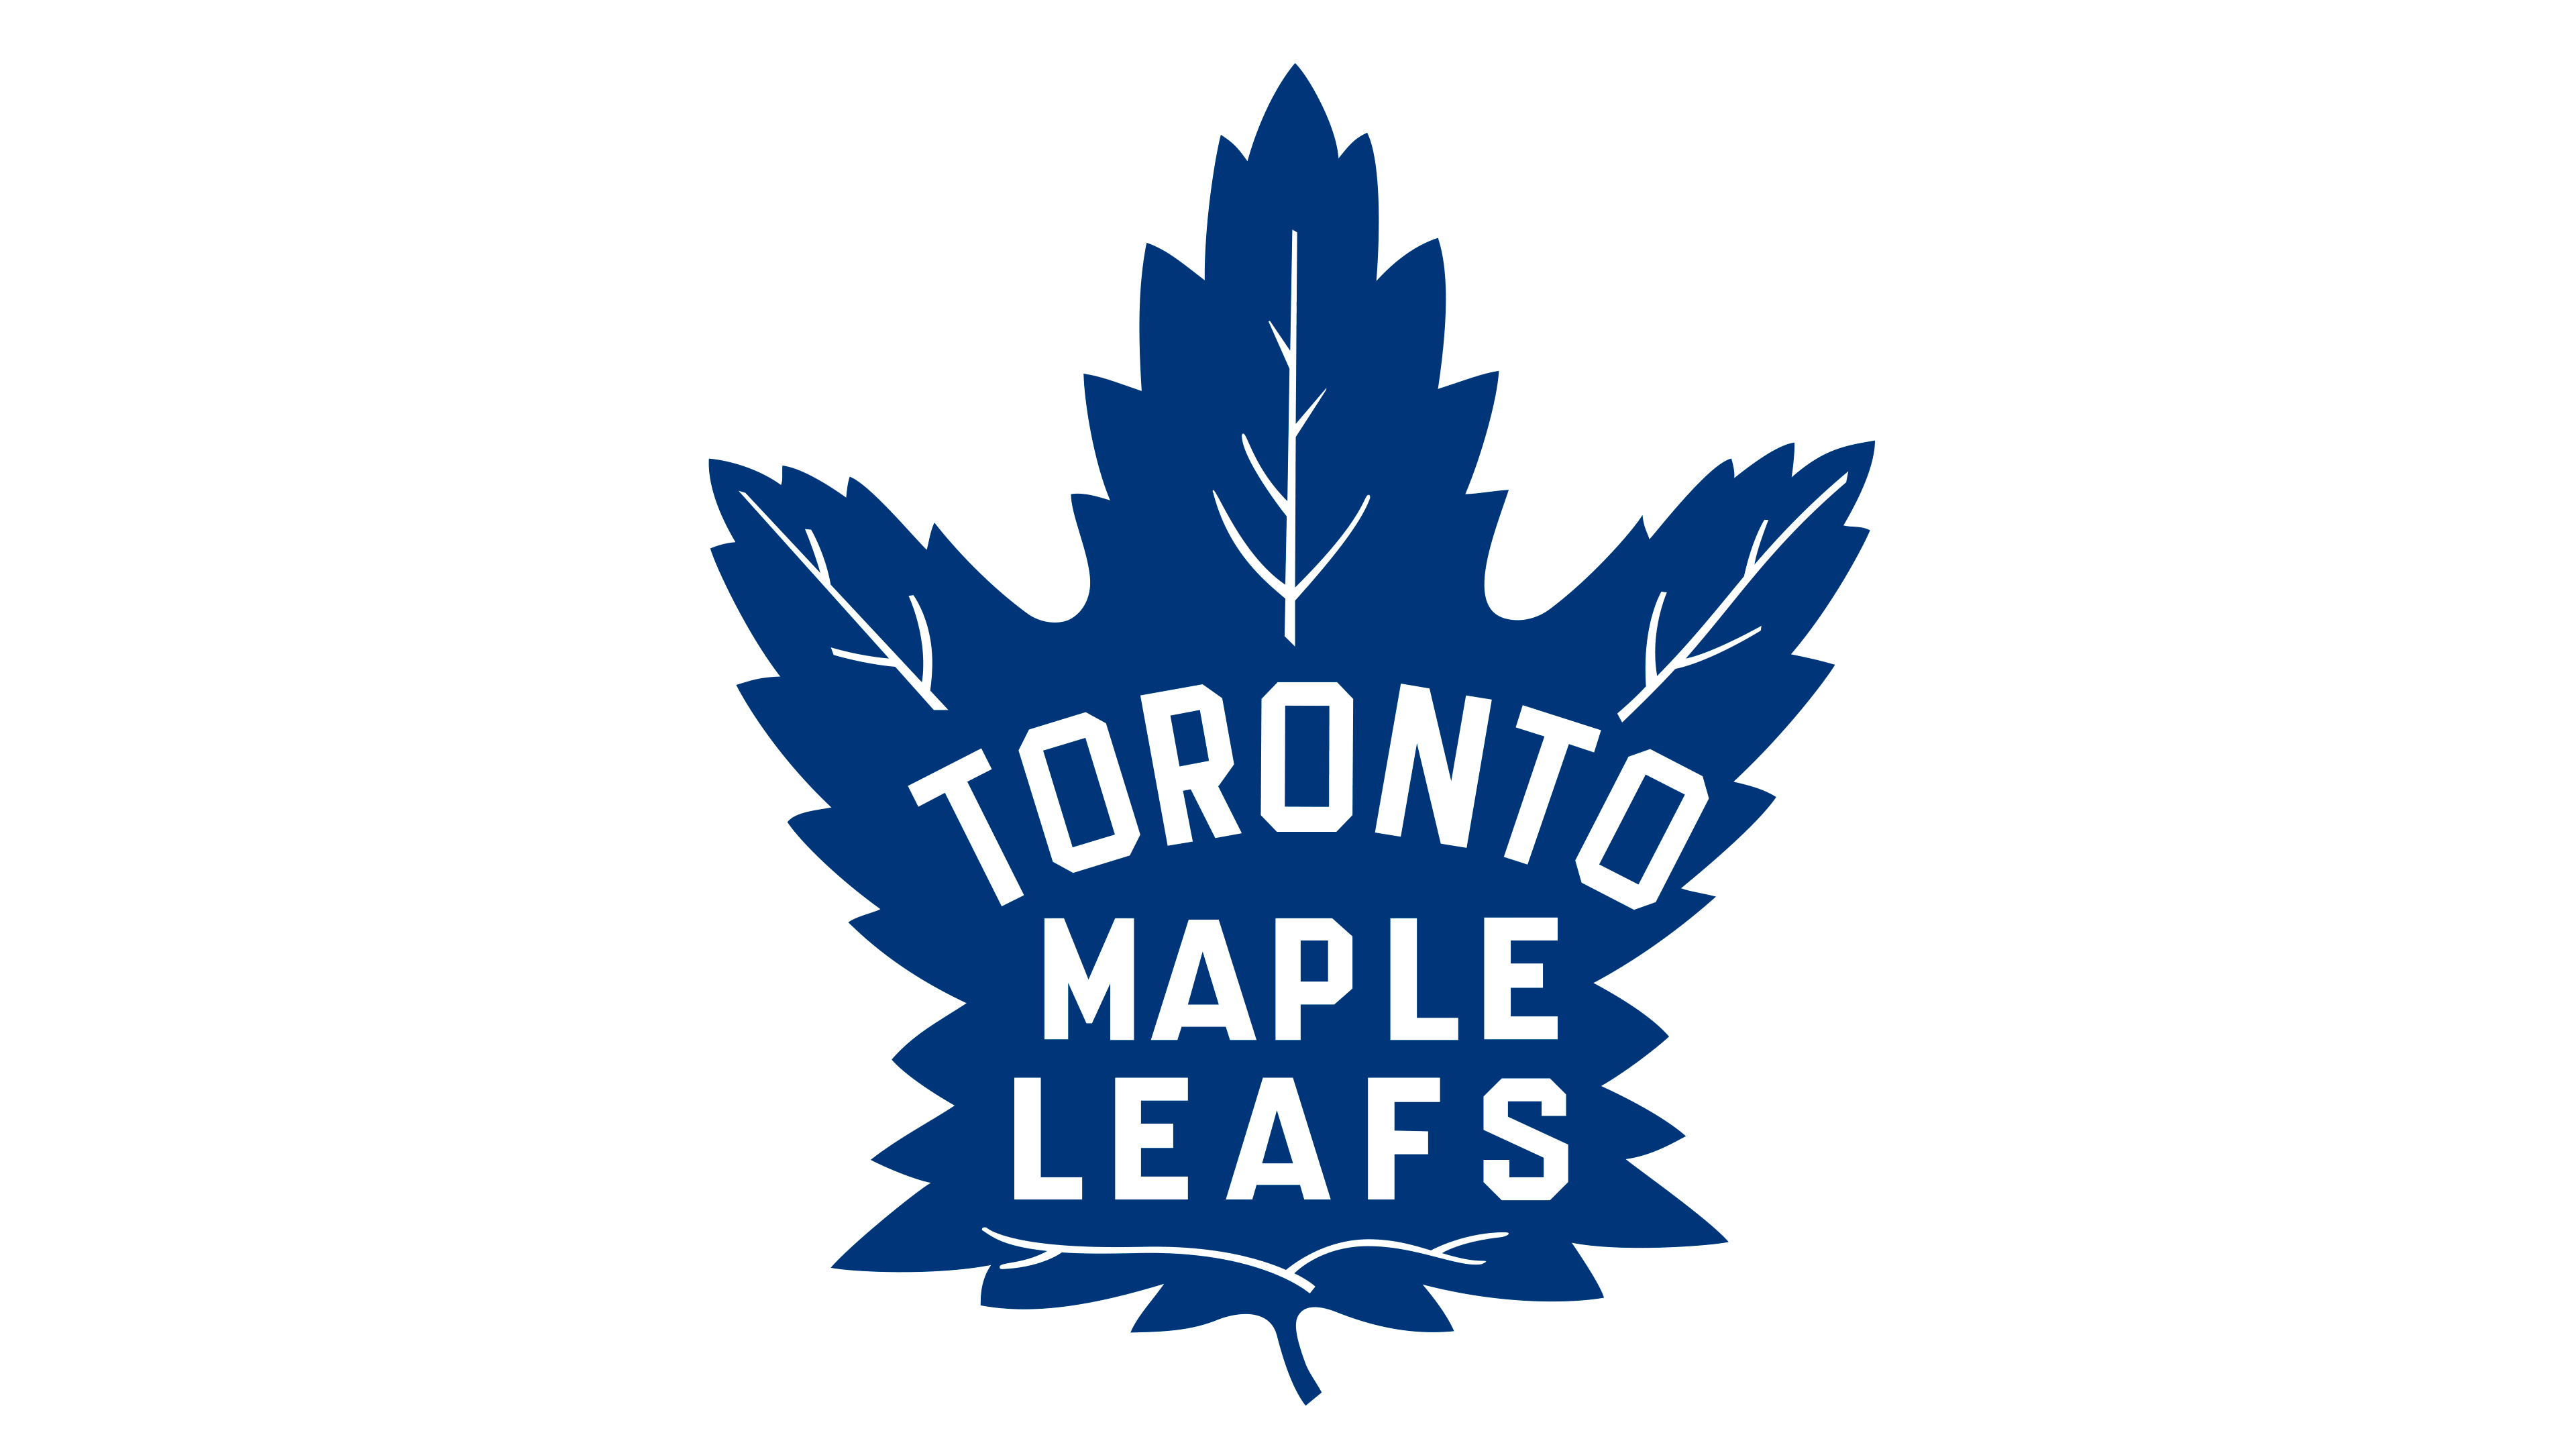 Toronto Maple Leafs Logos.